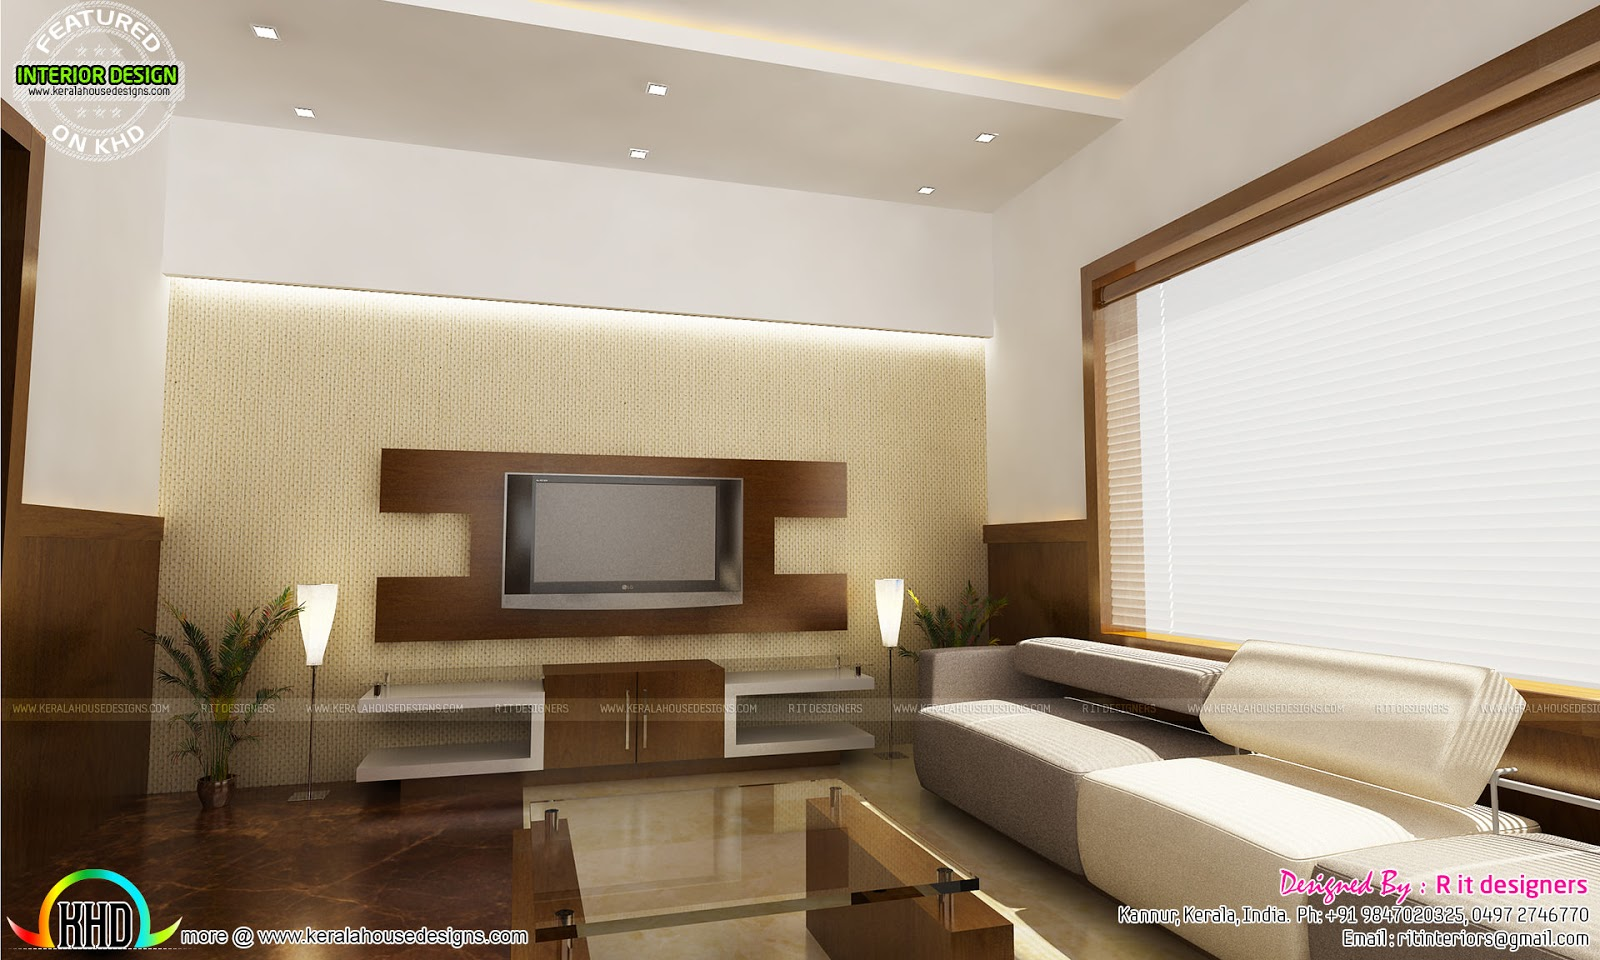 Take your beauty sleep to the next level with these dreamy bedroom design ideas. Kitchen, living, bedroom, dining interior decor - Kerala